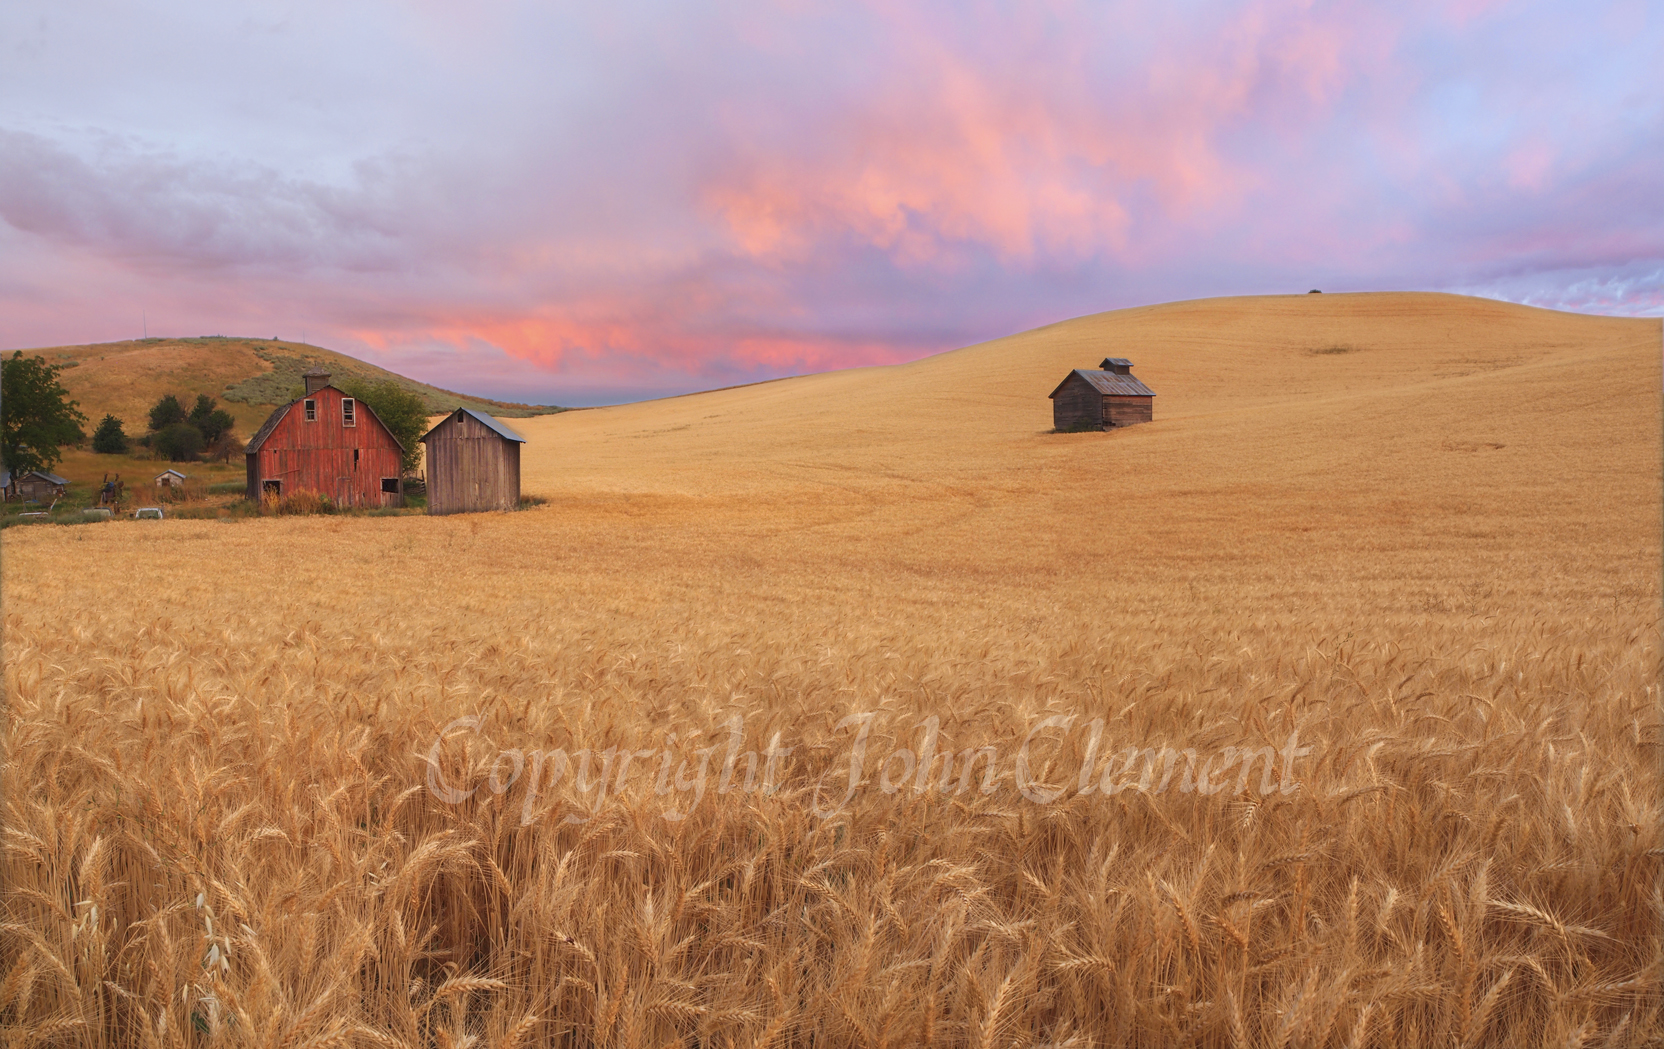 Morning on the Palouse